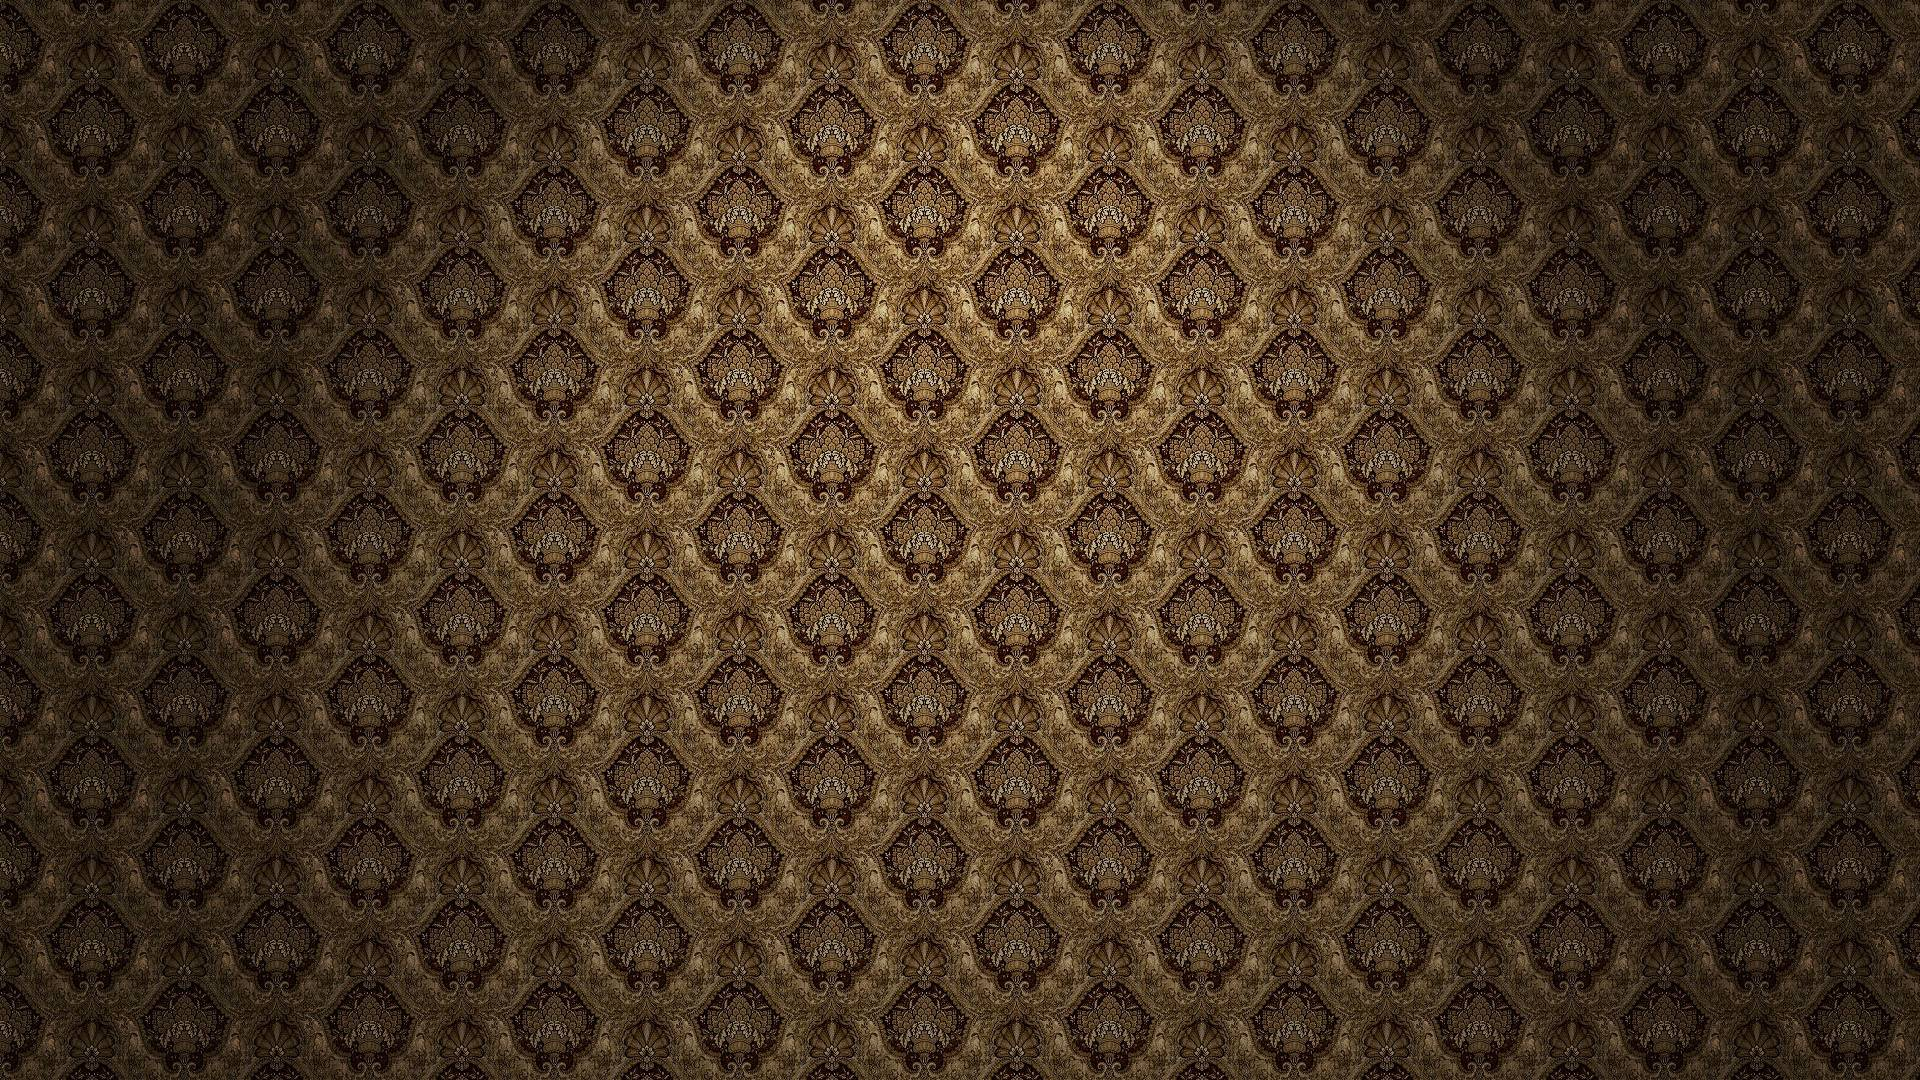 black and gold wallpaper 1920a—1080 high definition wallpaper